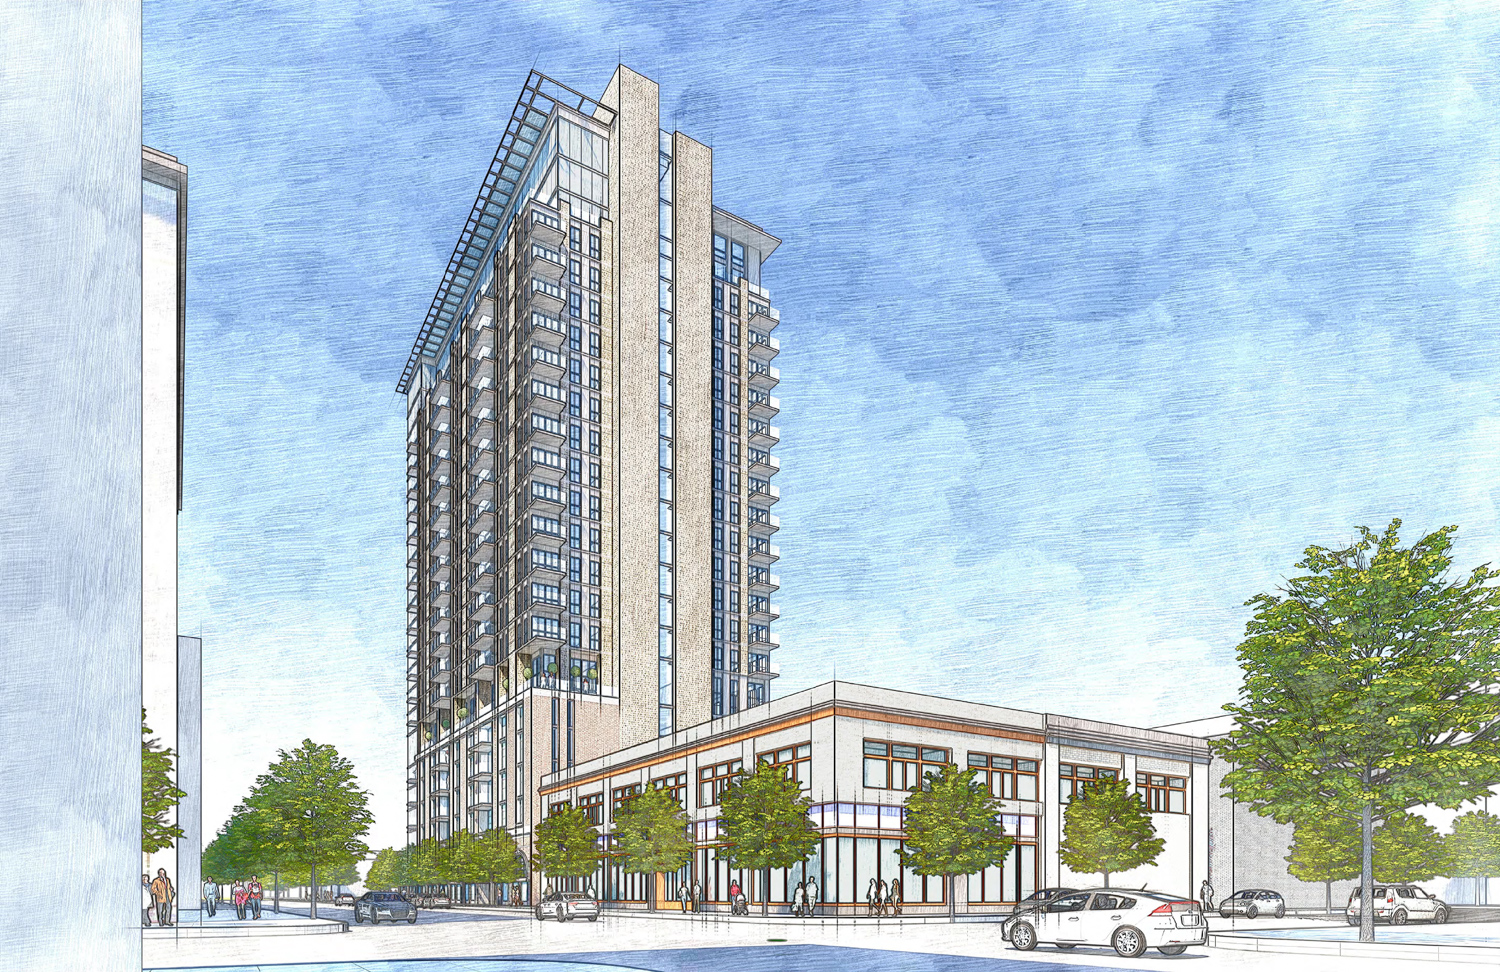 1261 Harrison Street from 13th and Webster Street, rendering by Heller Manus Architects